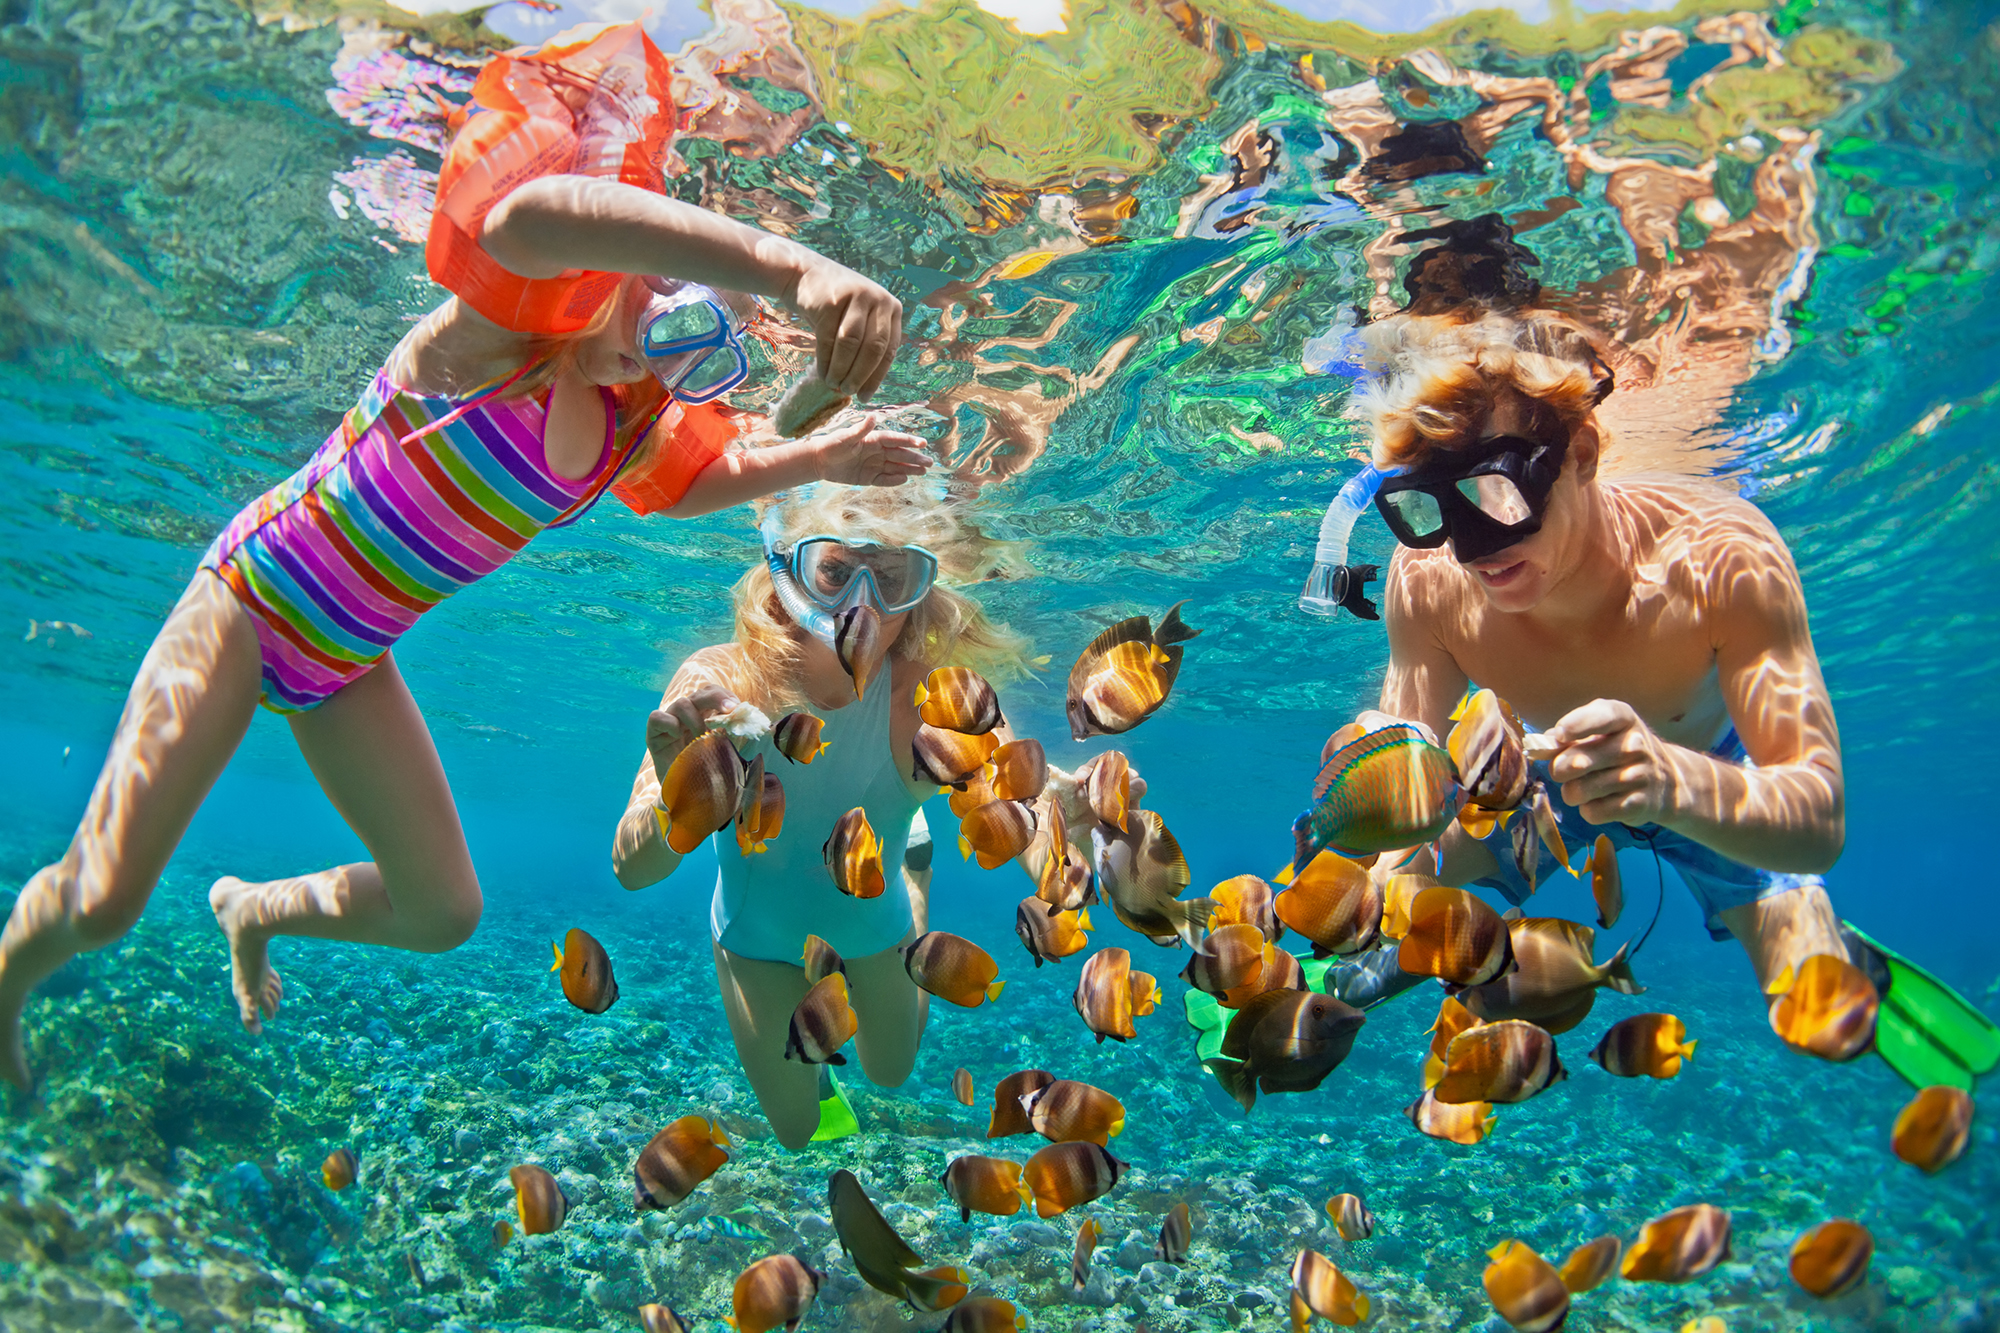 Family snorkeling with tropical fish in the Florida Keys